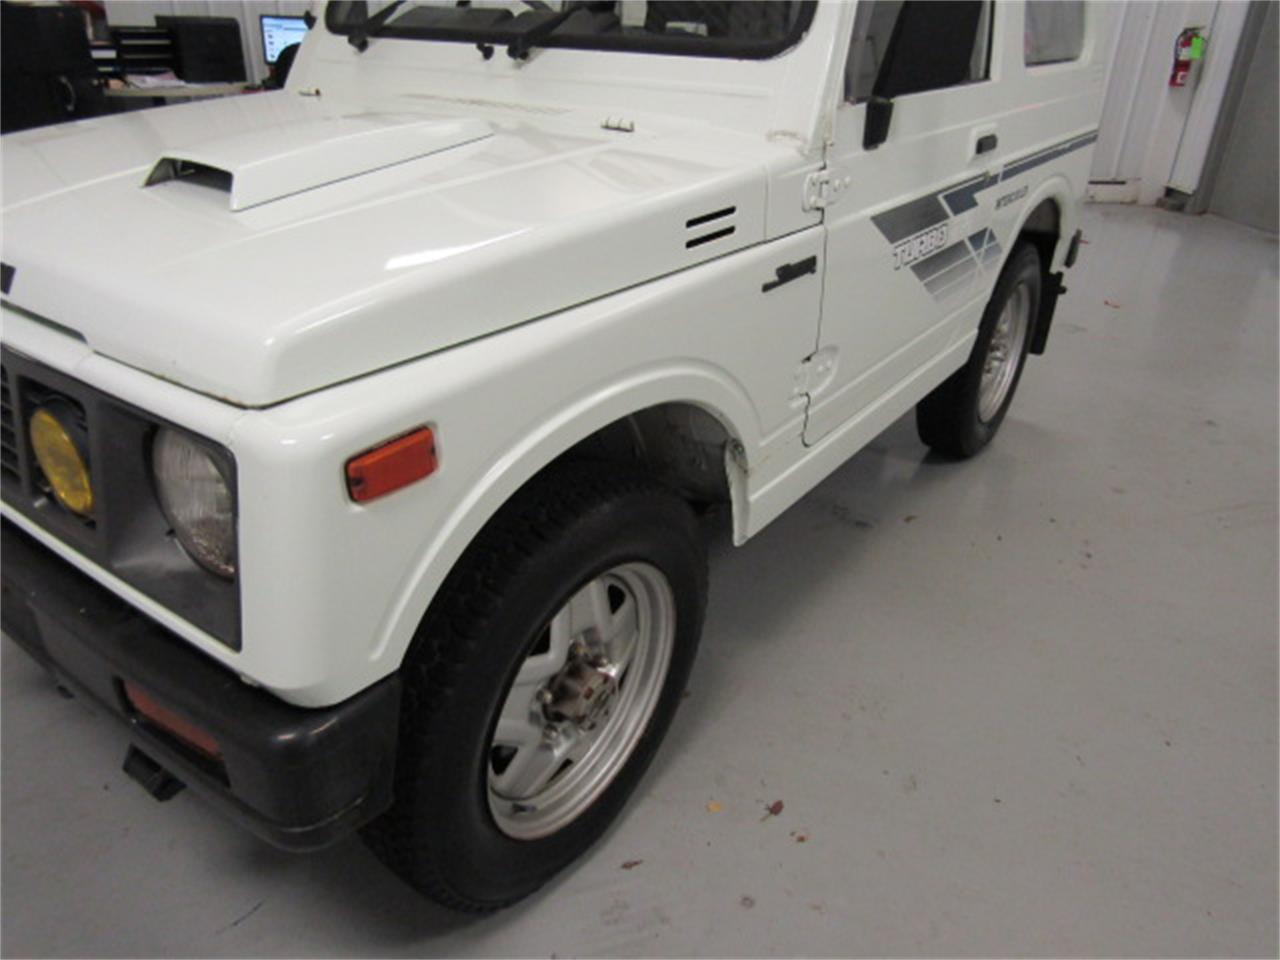 Large Picture of '87 Suzuki Jimmy located in Virginia - $3,999.00 - JM3N